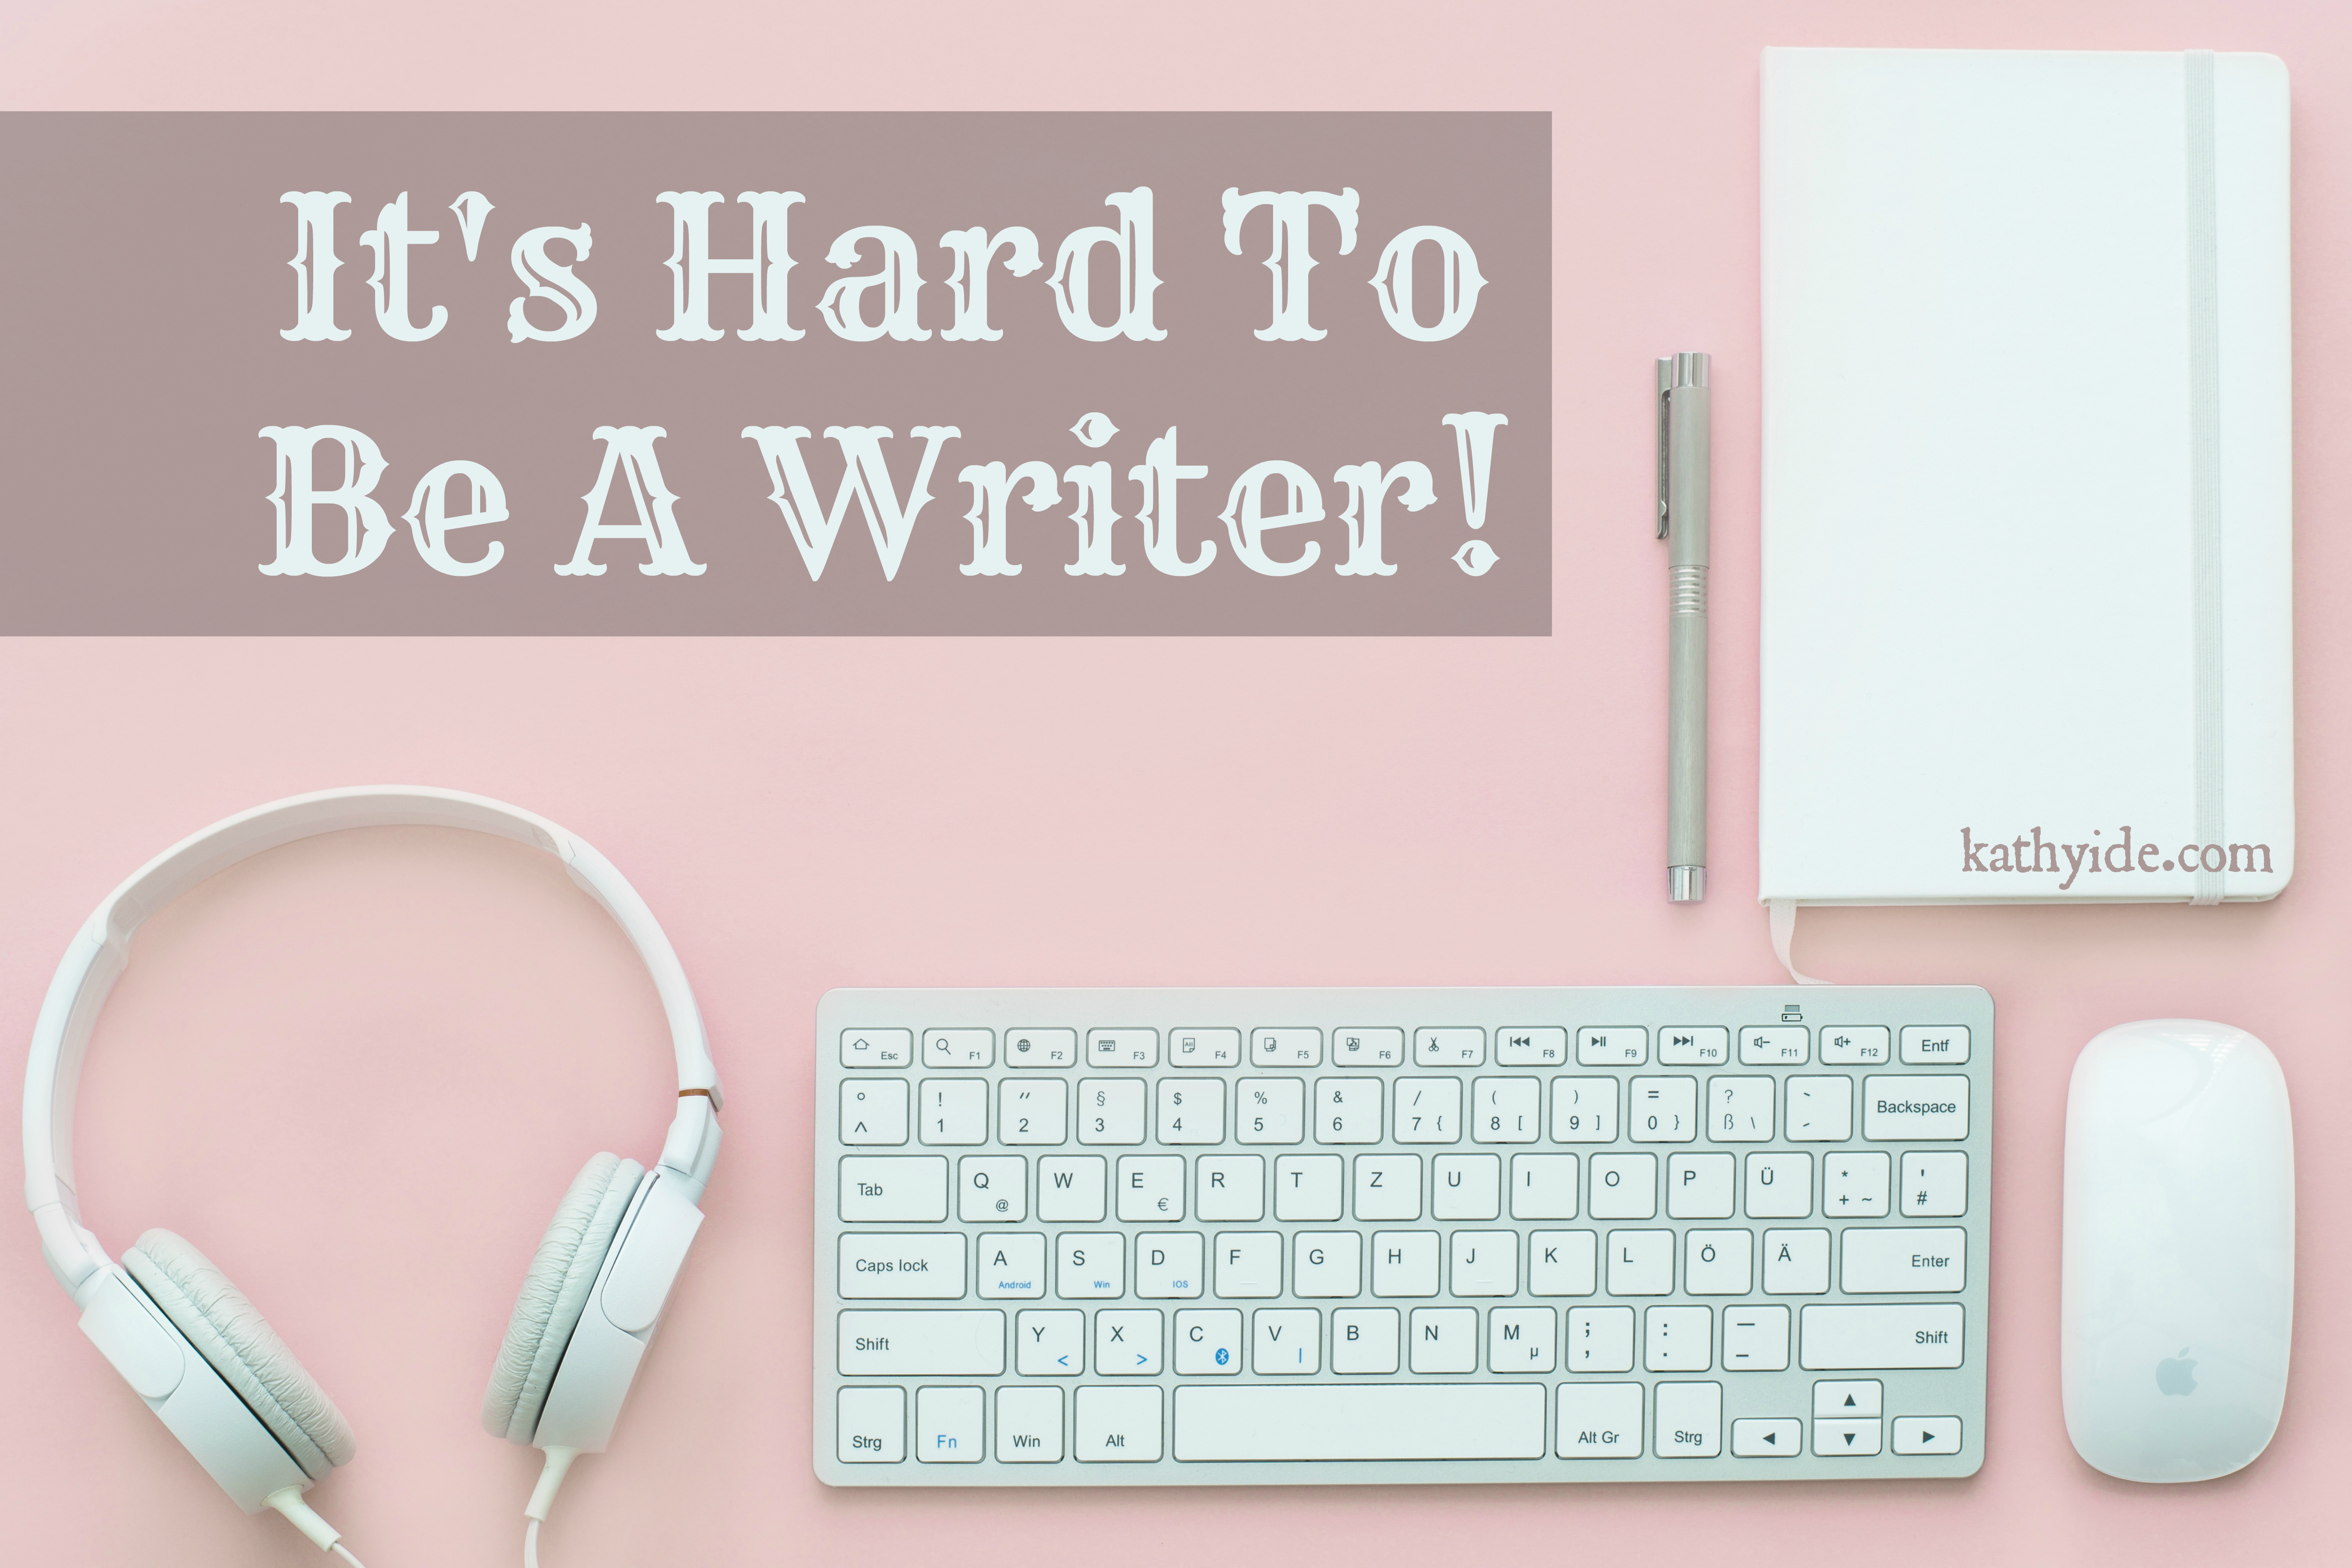 It's Hard to Be a Writer!